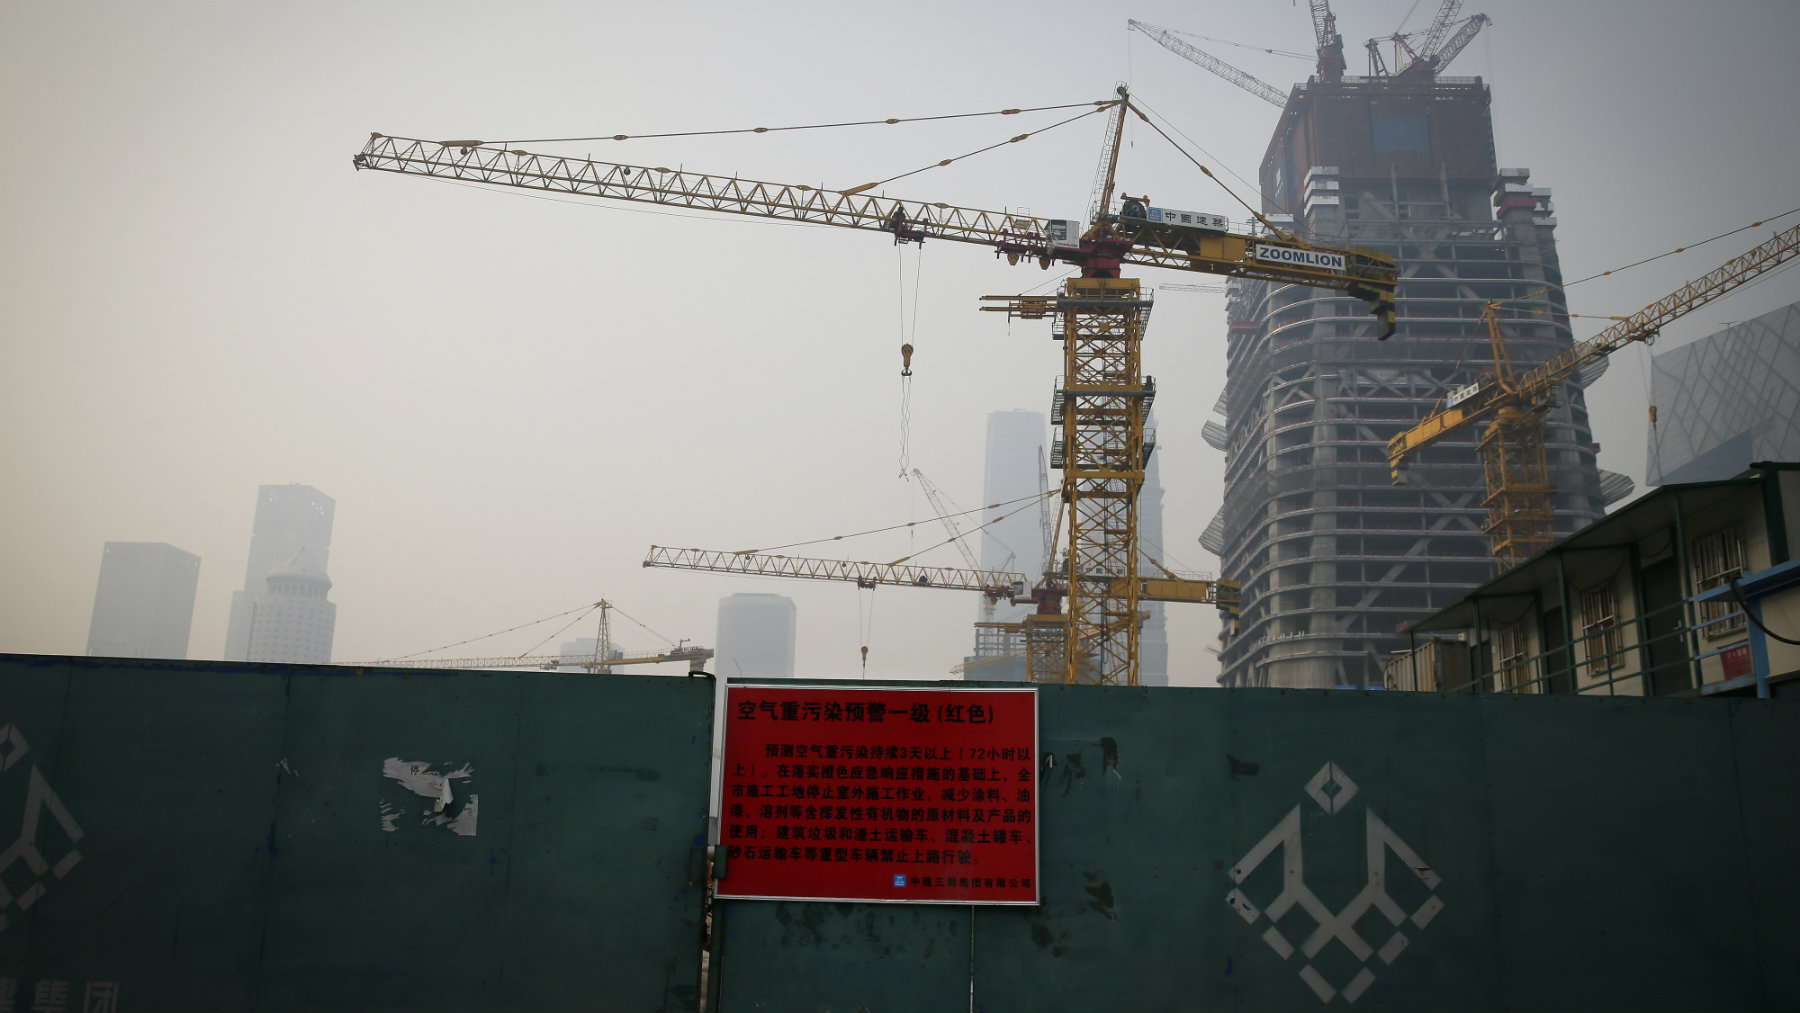 A red alert notice board is placed on the entrance gate of a construction site as the capital city shrouded with smog in Beijing.